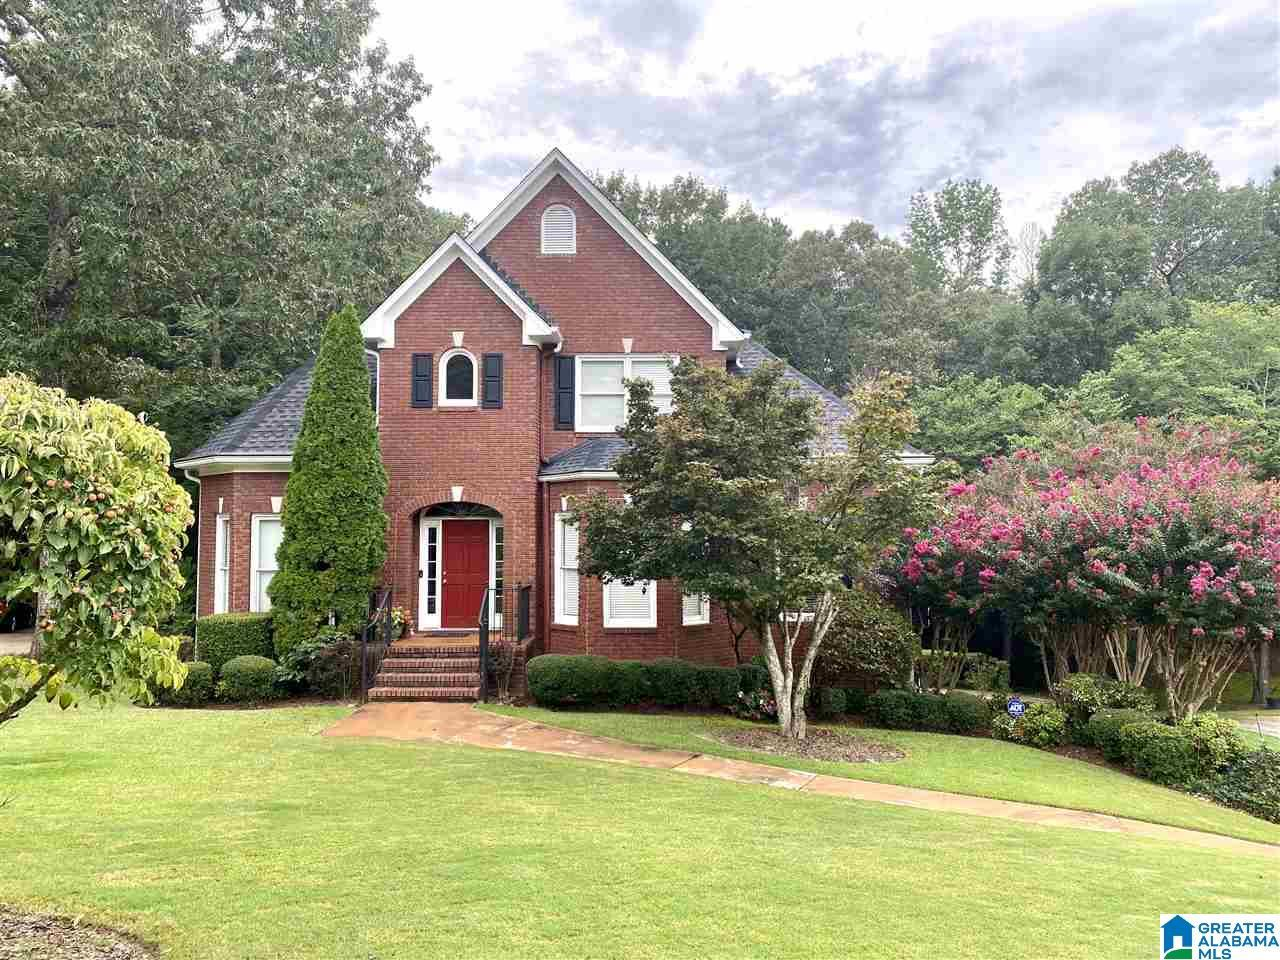 6524 OAK CREST COVE, Hoover, AL 35244 - MLS#: 893993